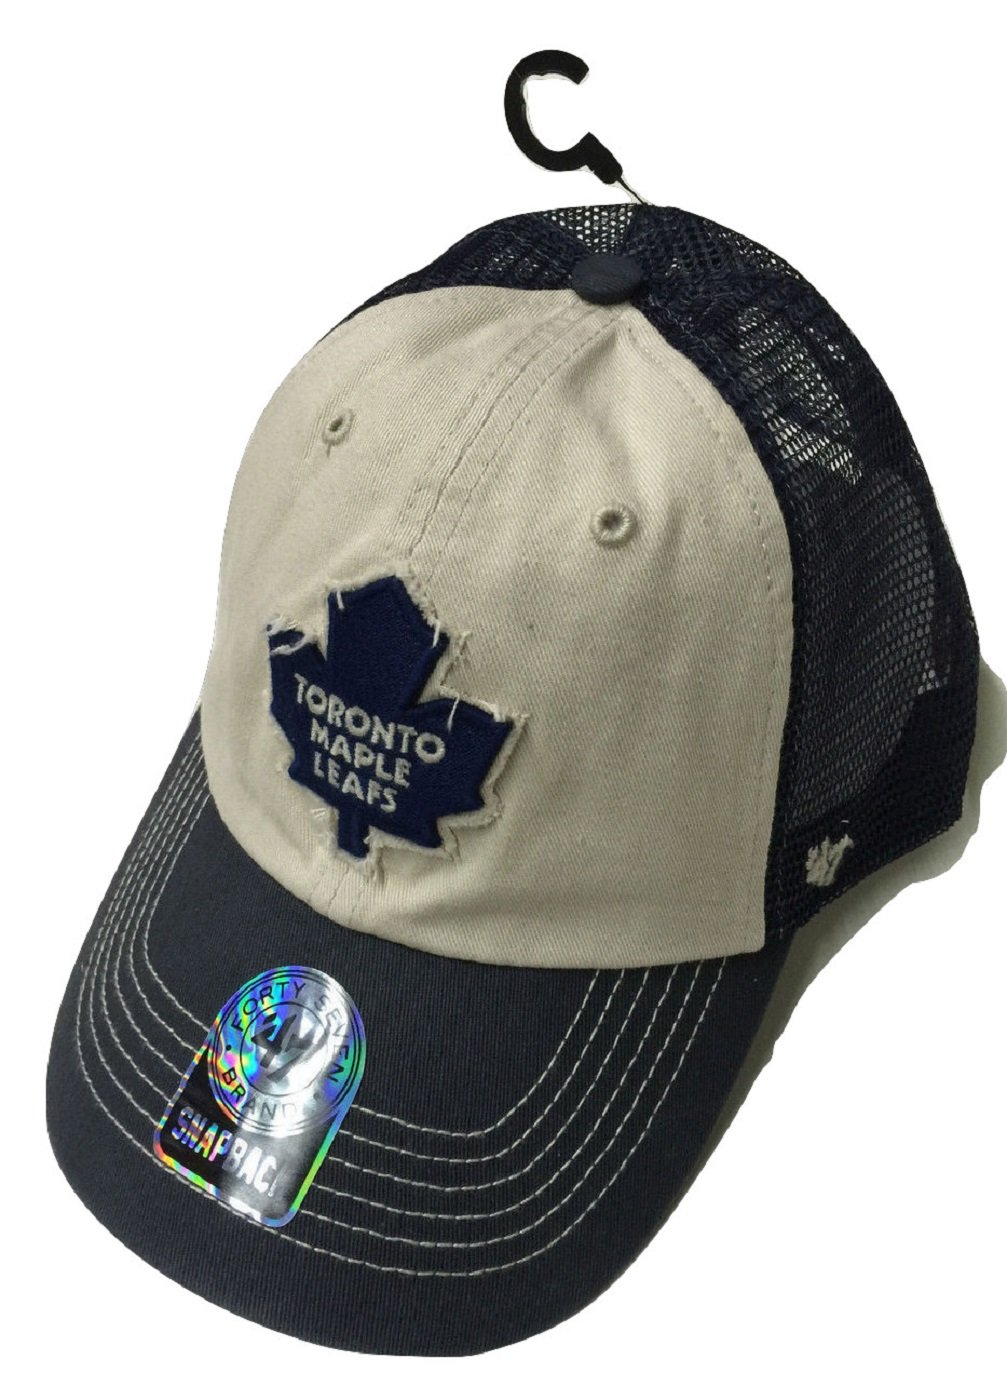 '47 Brand Toronto Maple Leafs Clean Up Navy/Cream Hat Osfa '47 Brand